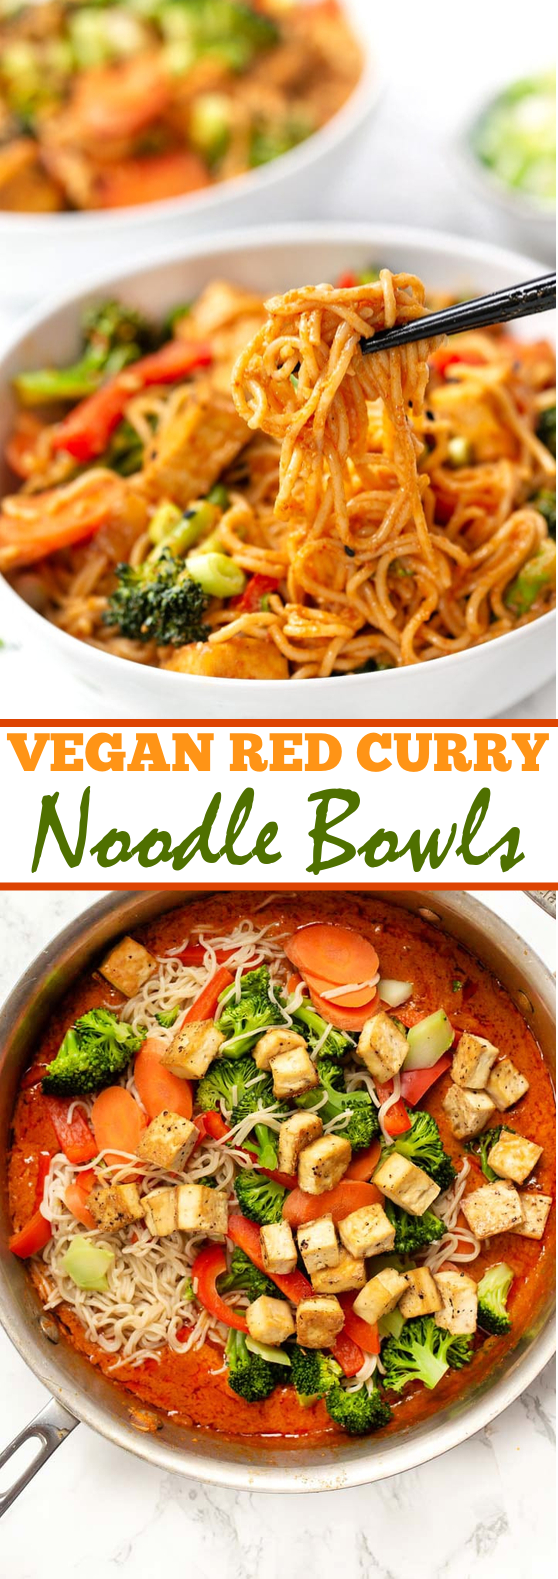 Vegan Red Curry Noodle Bowls #vegan #dinner #noodles #curry #comfortfood